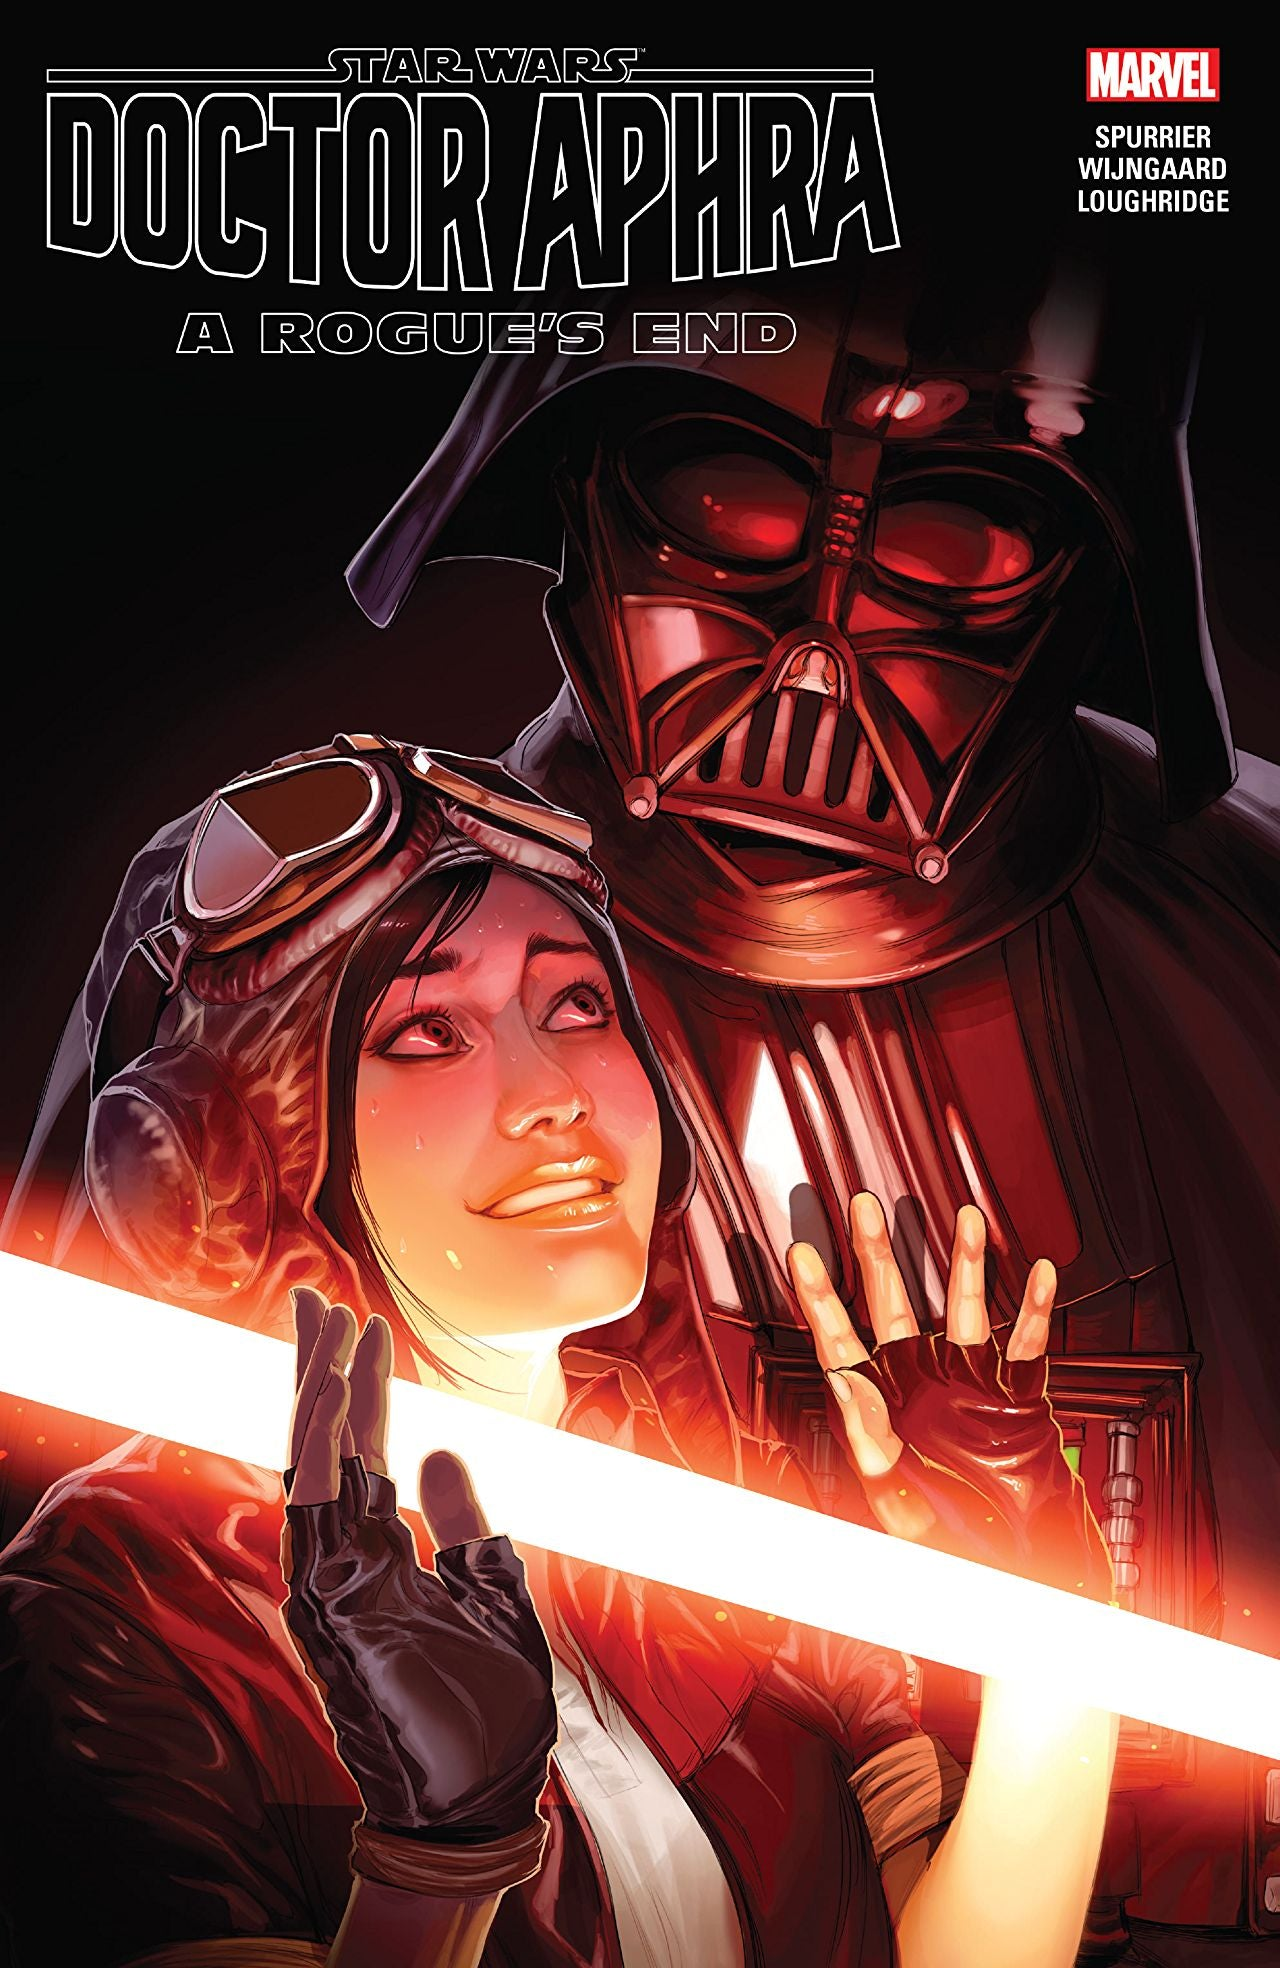 Star Wars - Doctor Aphra (2016) Volume 7: A Rogue's End